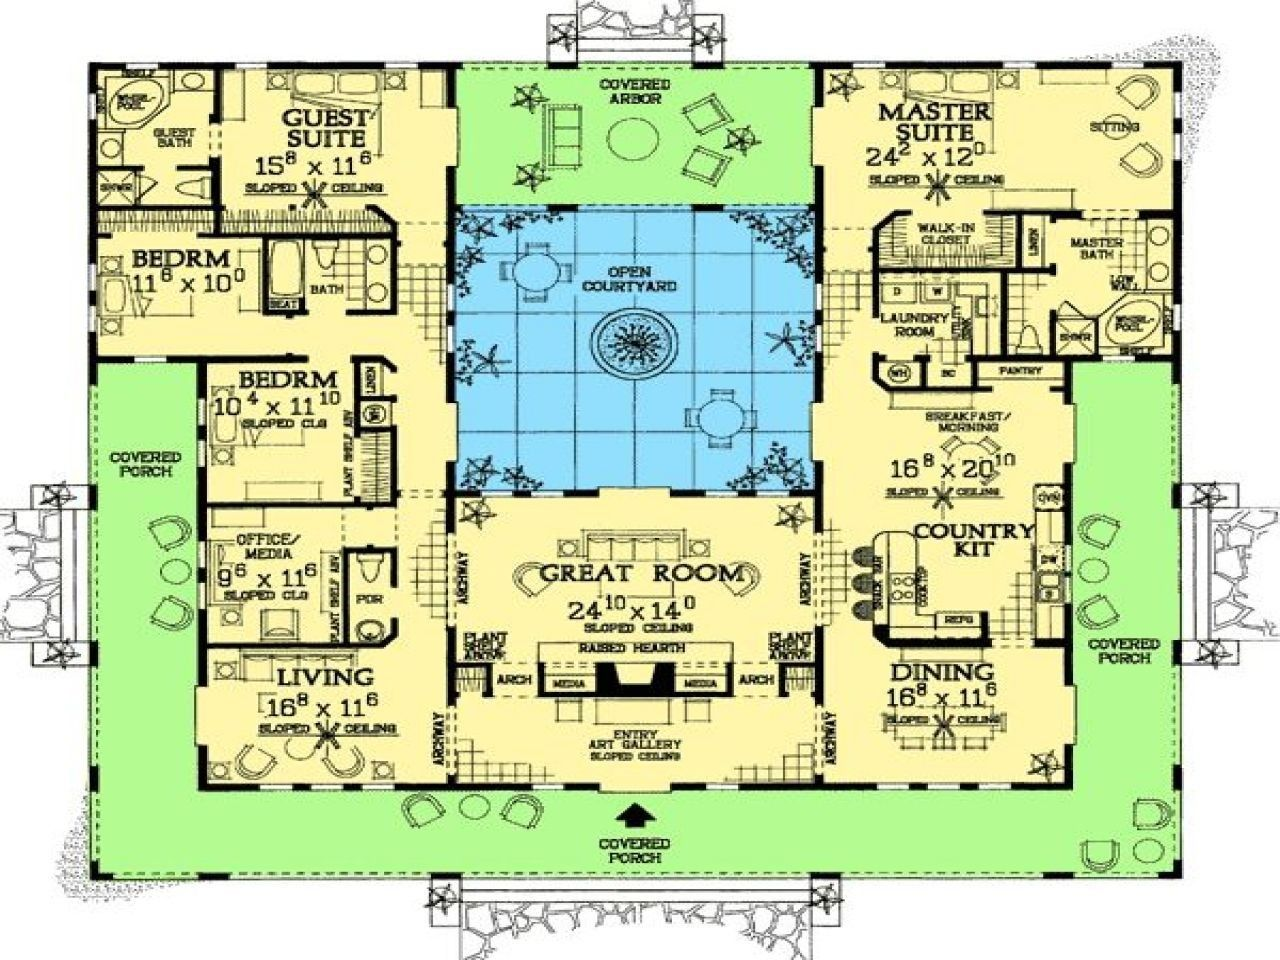 Spanish Hacienda Style Courtyard House Plans Mexican With Center 1 Remarkable Pool House Plans Mediterranean House Plans Courtyard House Plans